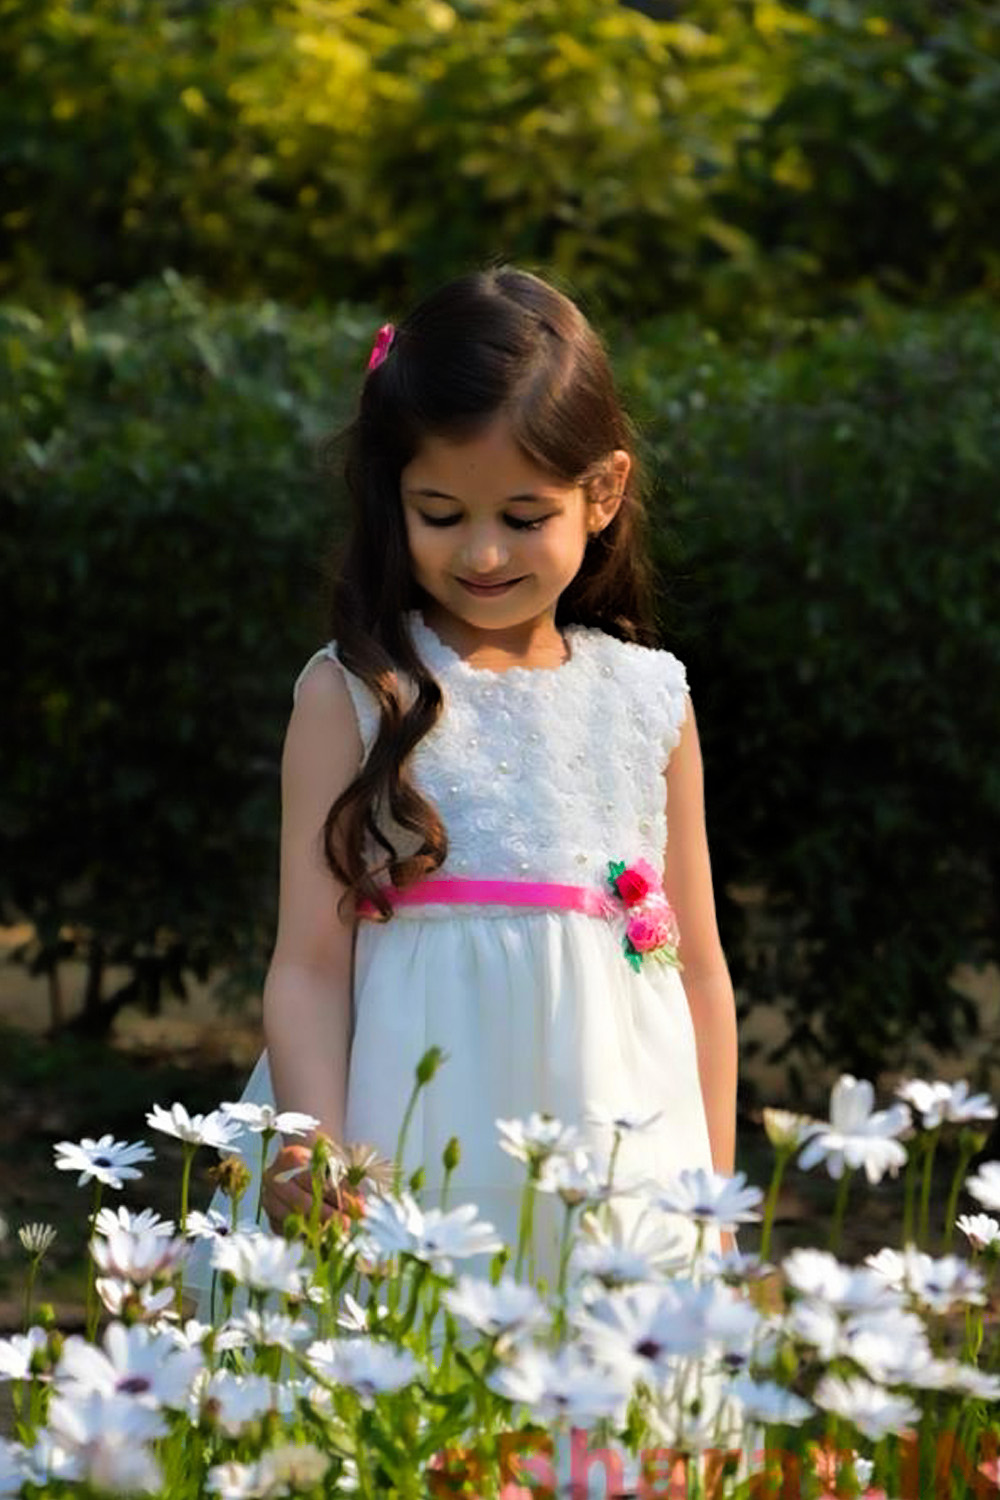 Wallpaper Of Little Girl In Bajrangi Bhaijaan Harshaali Malhotra Hd Wallpapers High Definition